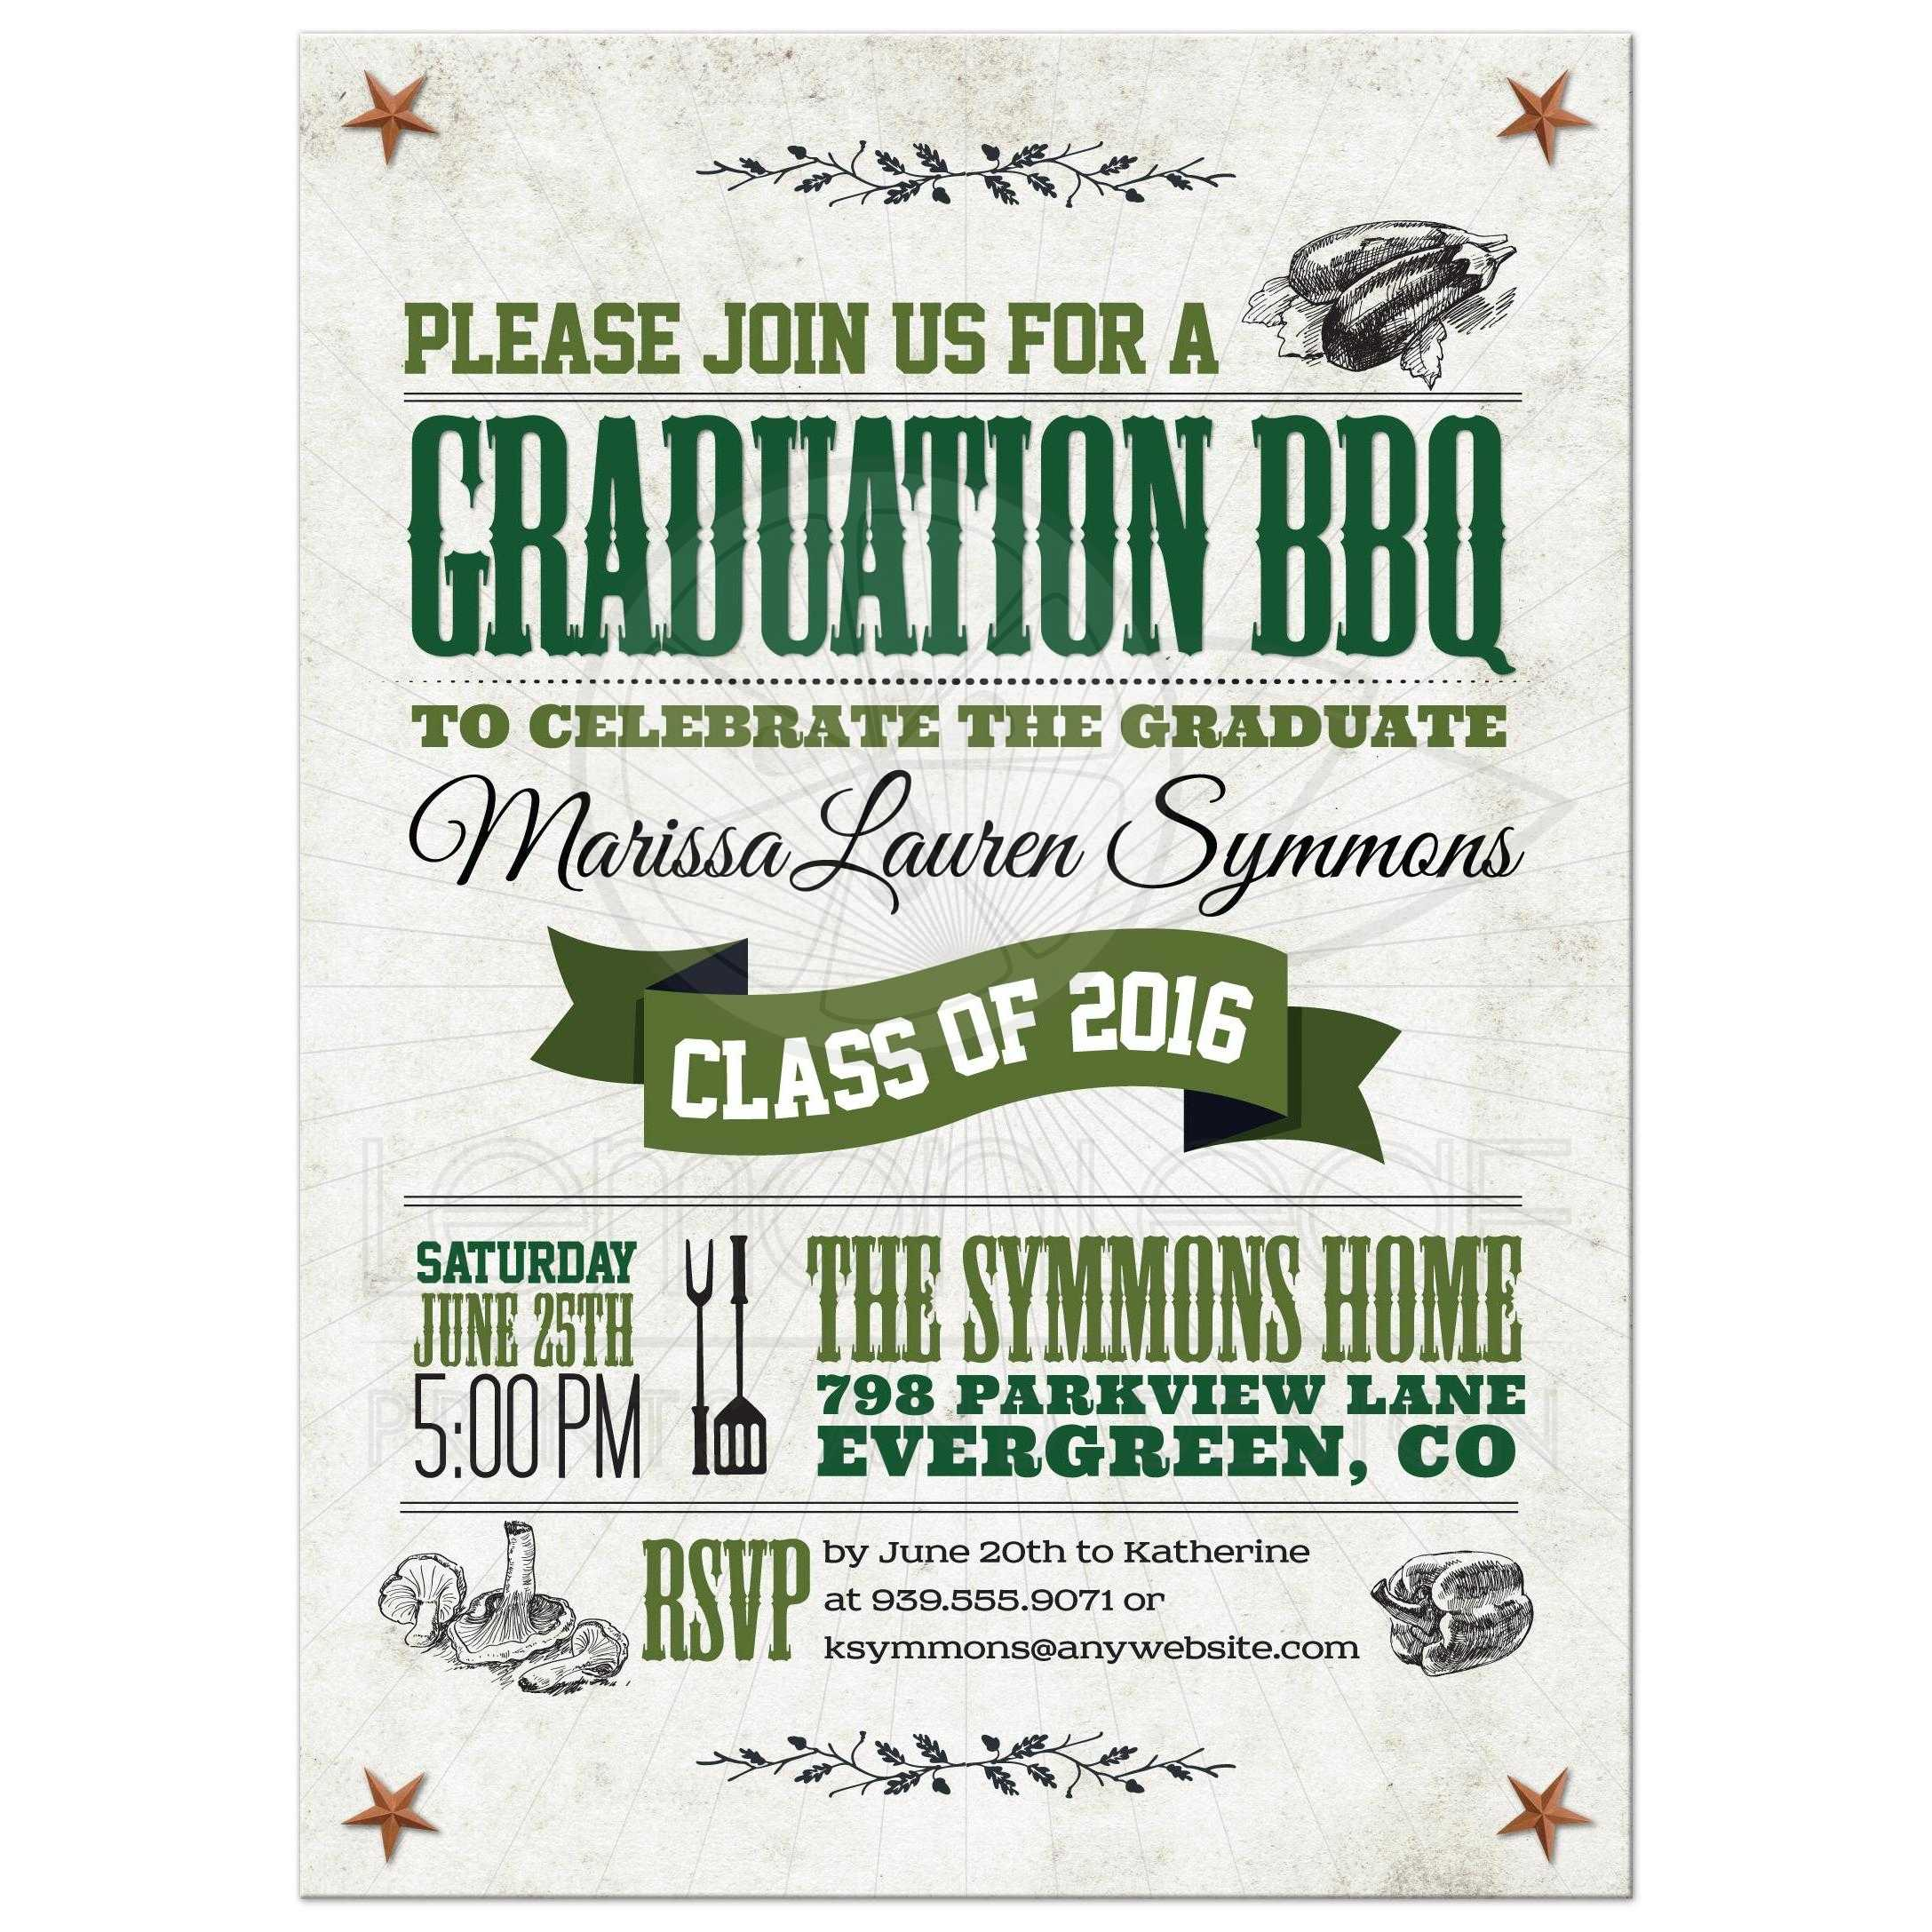 graduation party invitation rustic vegetarian vegan bbq green brown